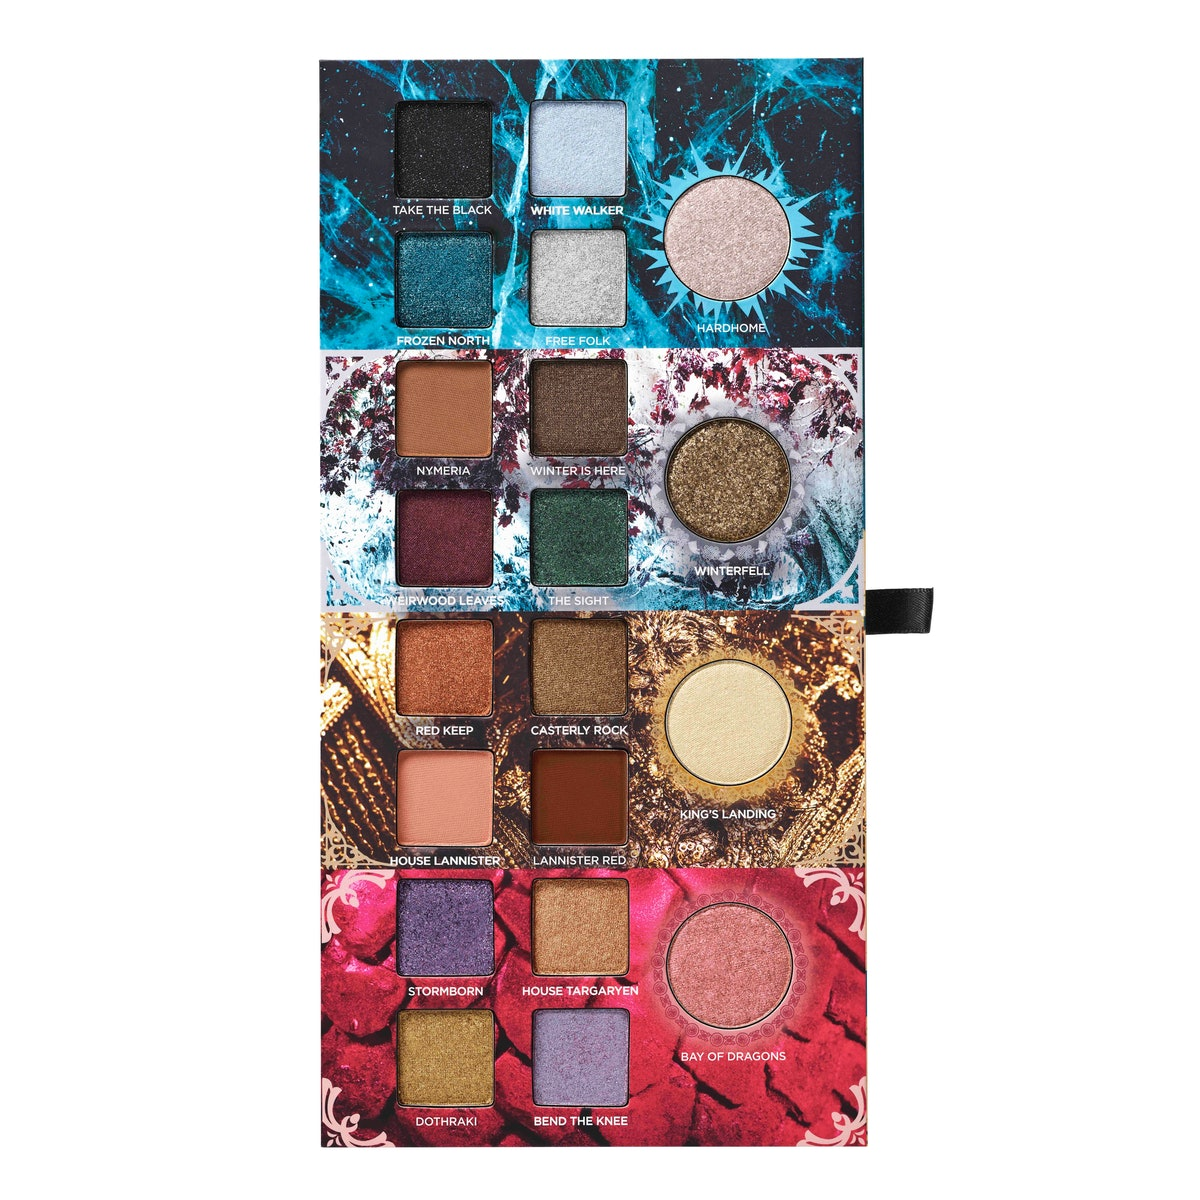 The Urban Decay | Game of Thrones Eyeshadow Palette